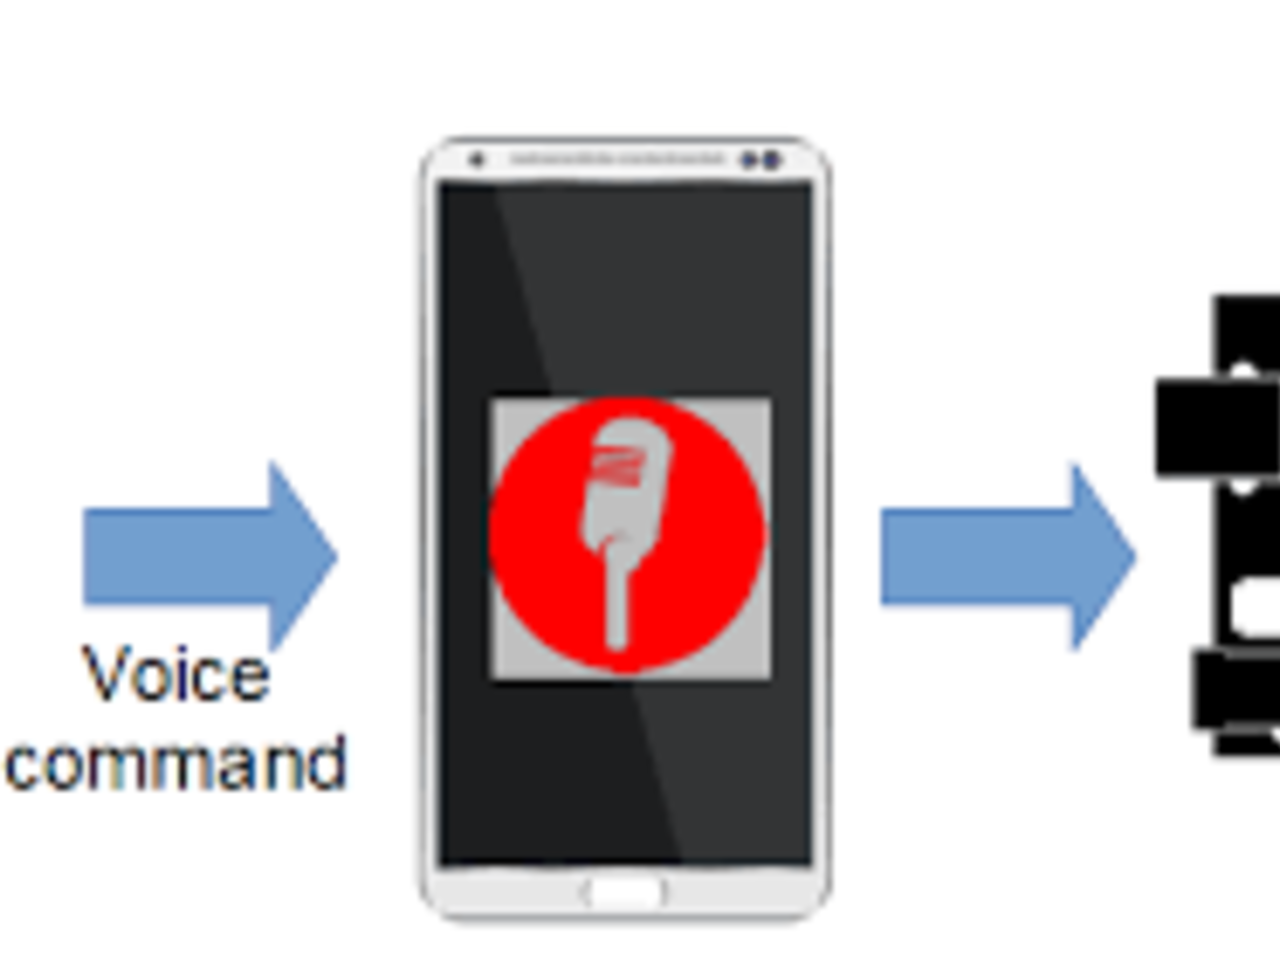 Embedded Speech Recognition for Mobile and IoT Devices